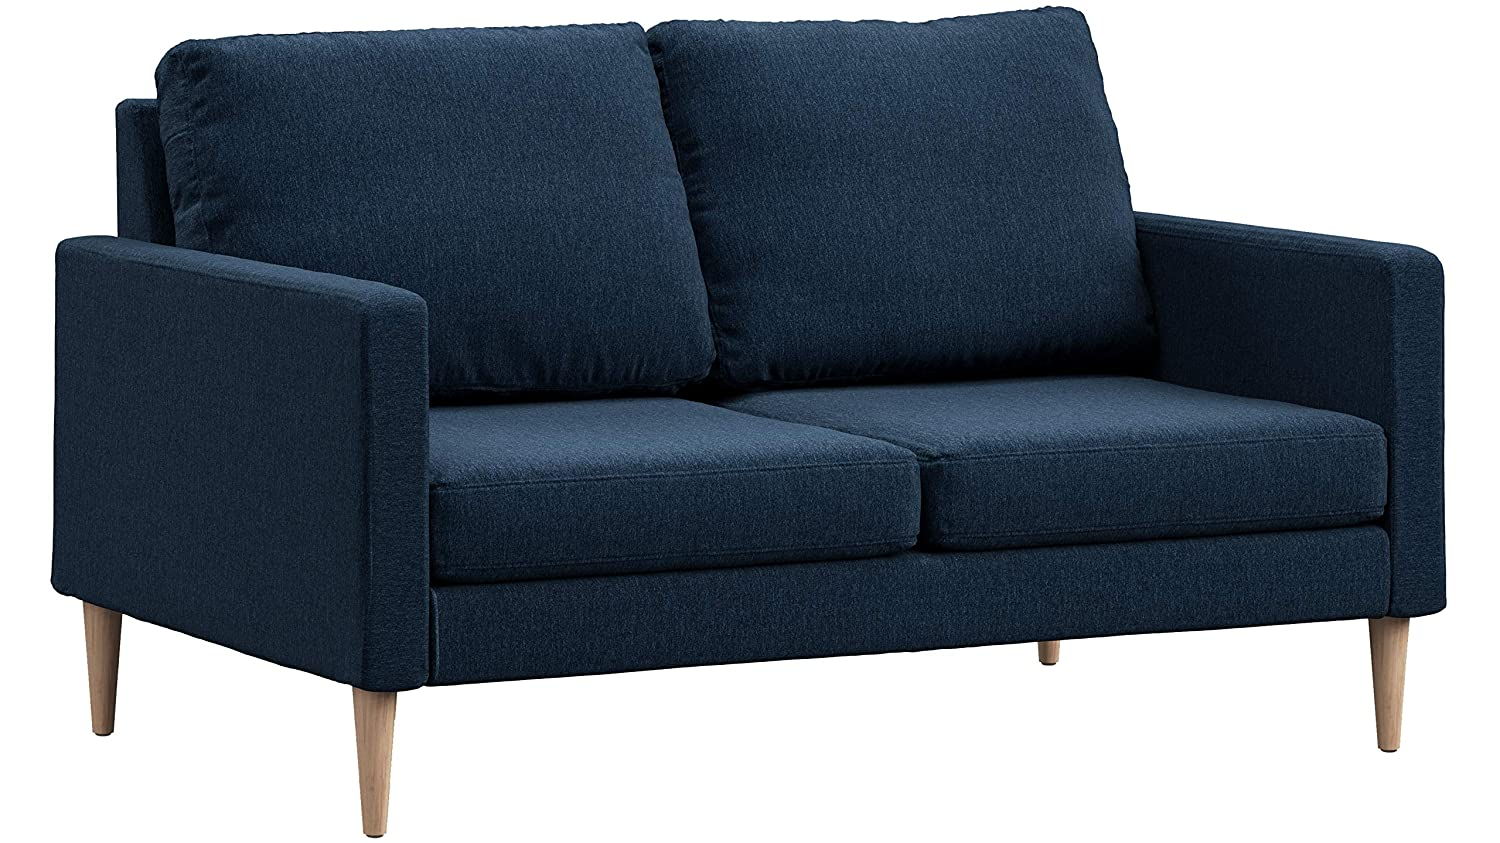 Campaign Steel Frame Brushed Weave Loveseat, 61 Inches, Midnight Navy with Solid Maple Legs